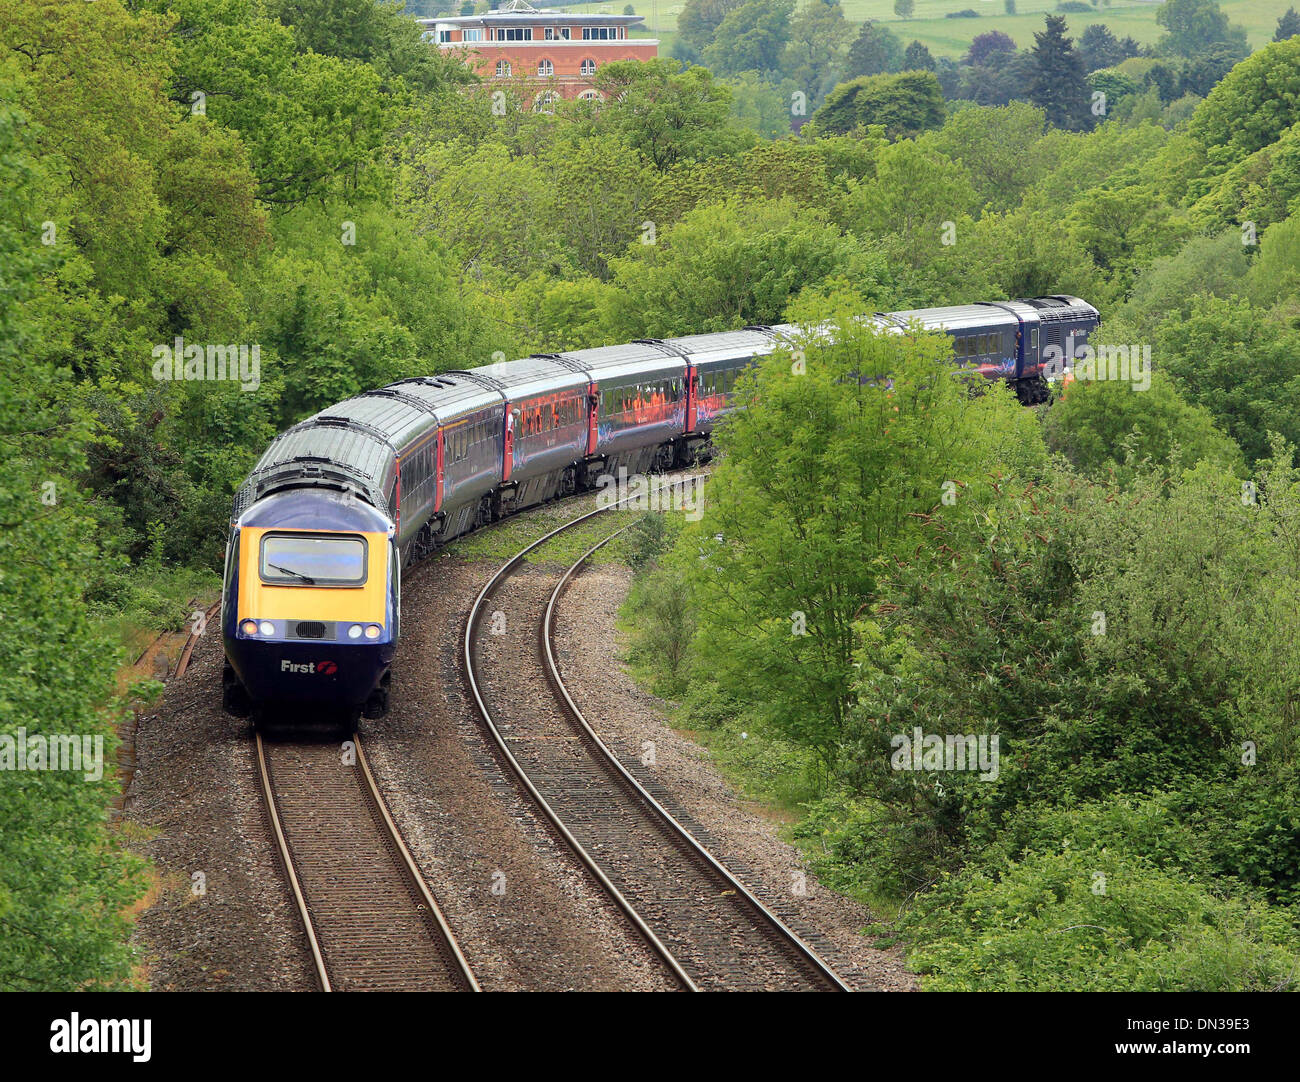 Train on a viaduct on the outskirts of Stroud, Gloucestershire - Stock Image